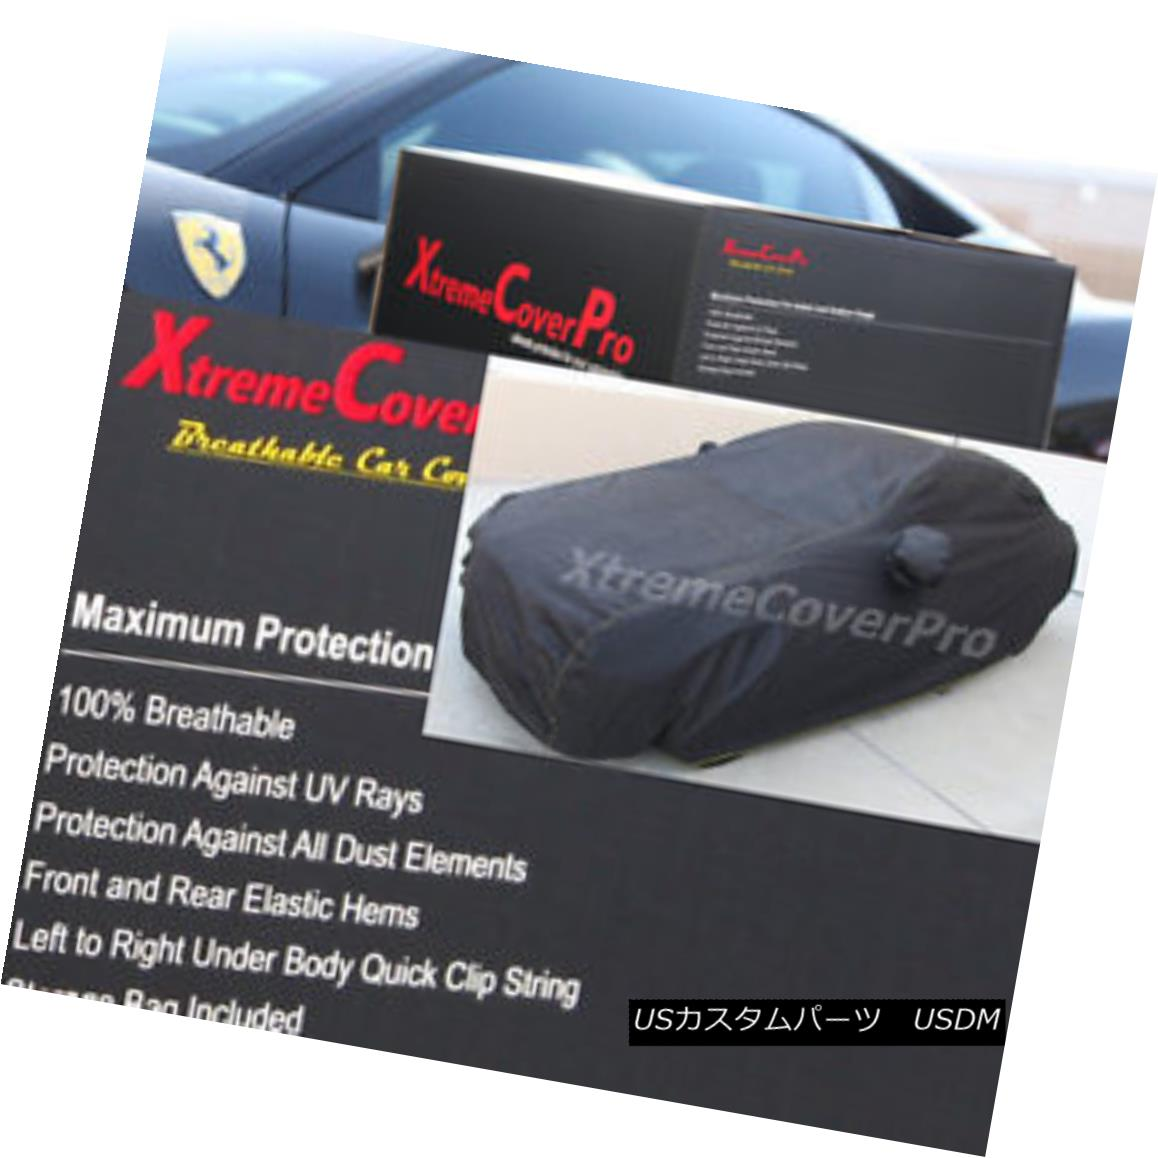 カーカバー 2018 MERCEDES-BENZ E400 E550 COUPE BREATHABLE CAR COVER W/MIRROR POCKET -BL 2018 MERCEDES-BENZ E400 E550クーペBREATHABLE CAR COVER W / MIRROR POCKET -BL